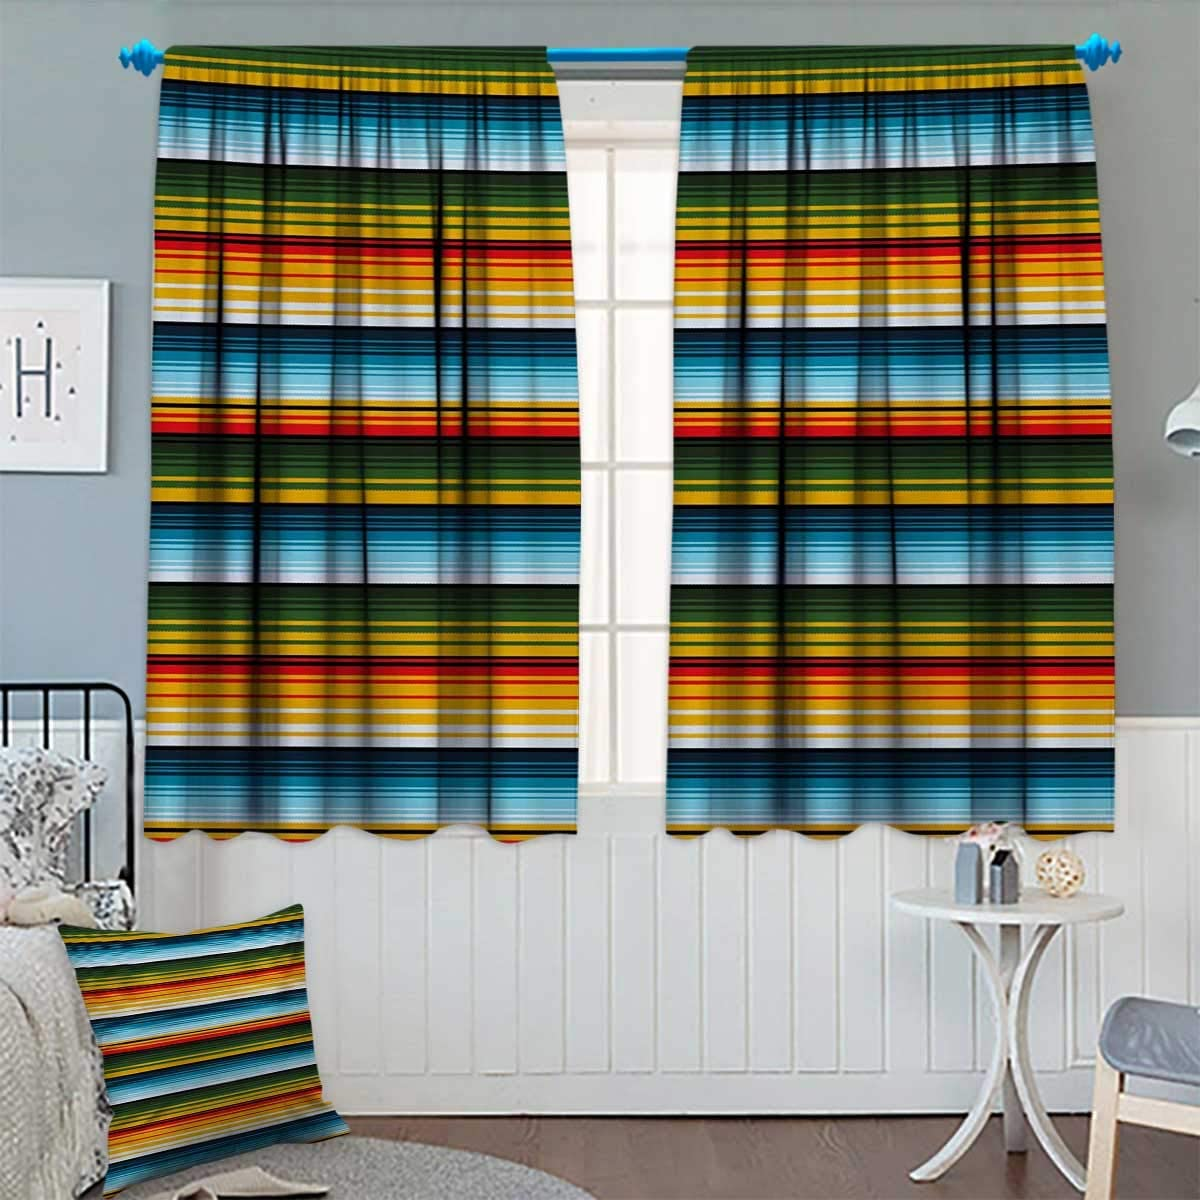 Chaneyhouse Striped Room Darkening Curtains Mexican Inspirations in Hand Made Horizontal Lines with Woven Ornamental Style Customized Curtains 72 W x 84 L Multicolor